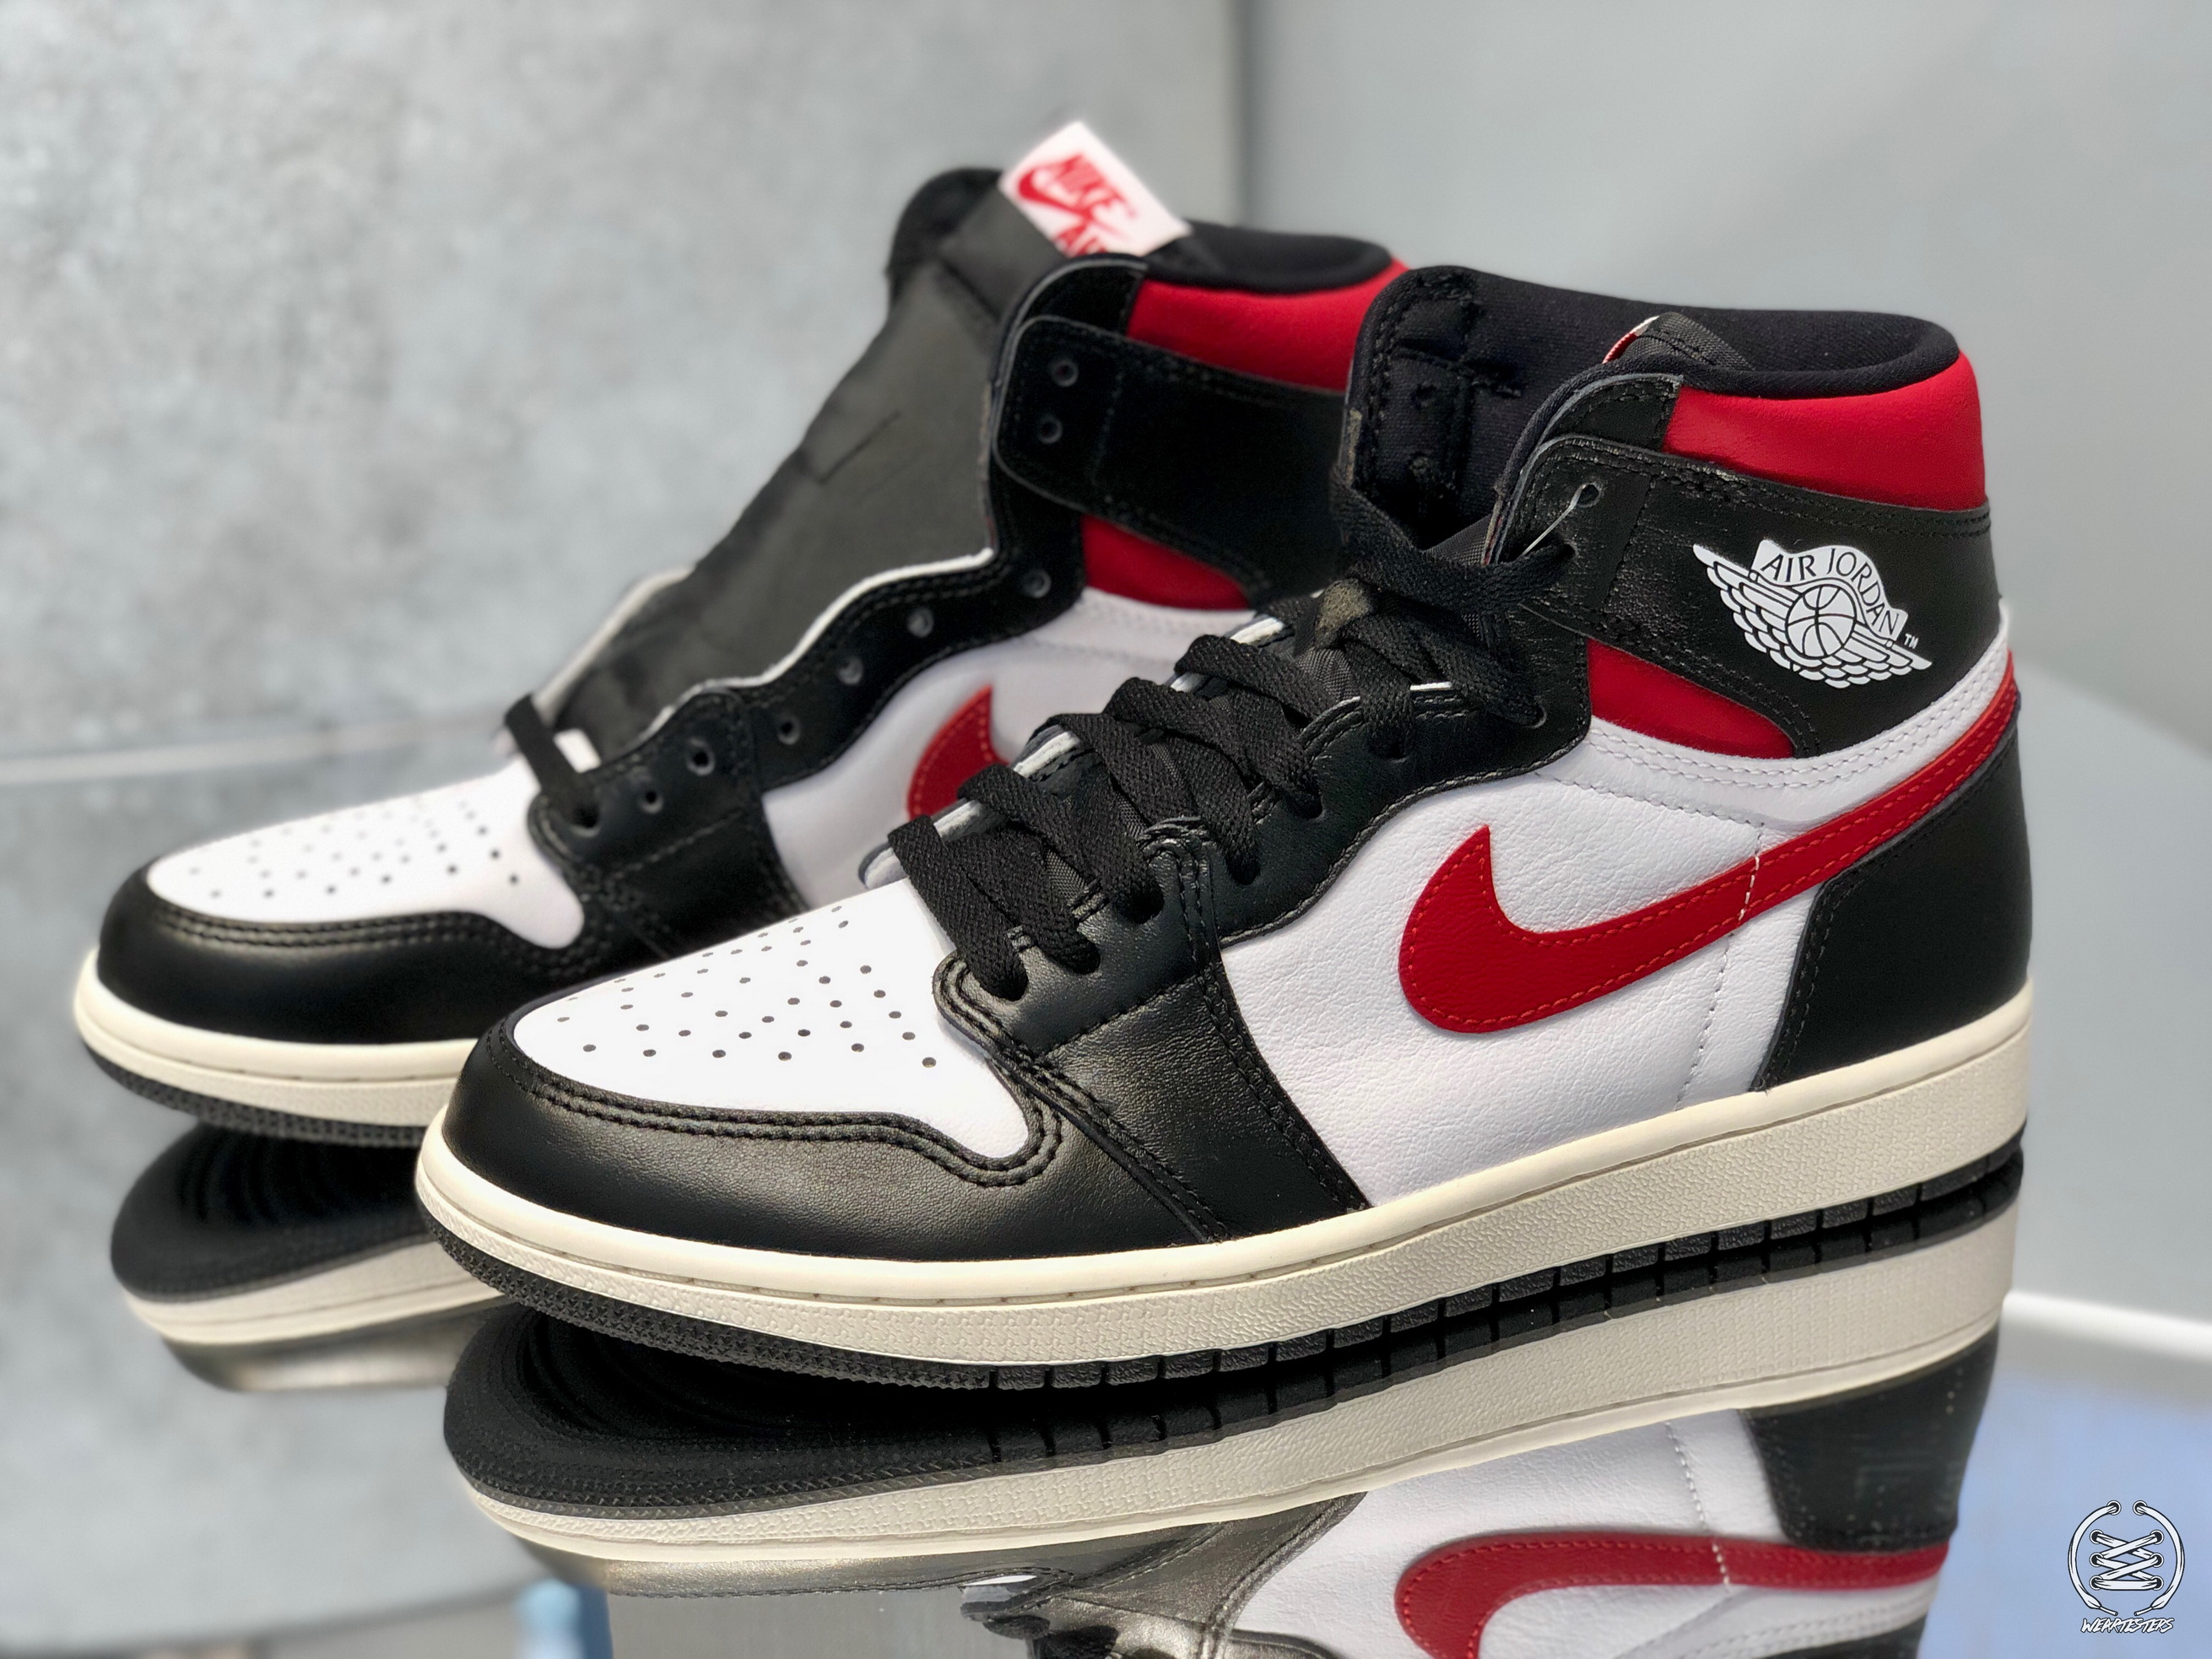 A Detailed Look at the Air Jordan 1 High OG Black/White-Red ...